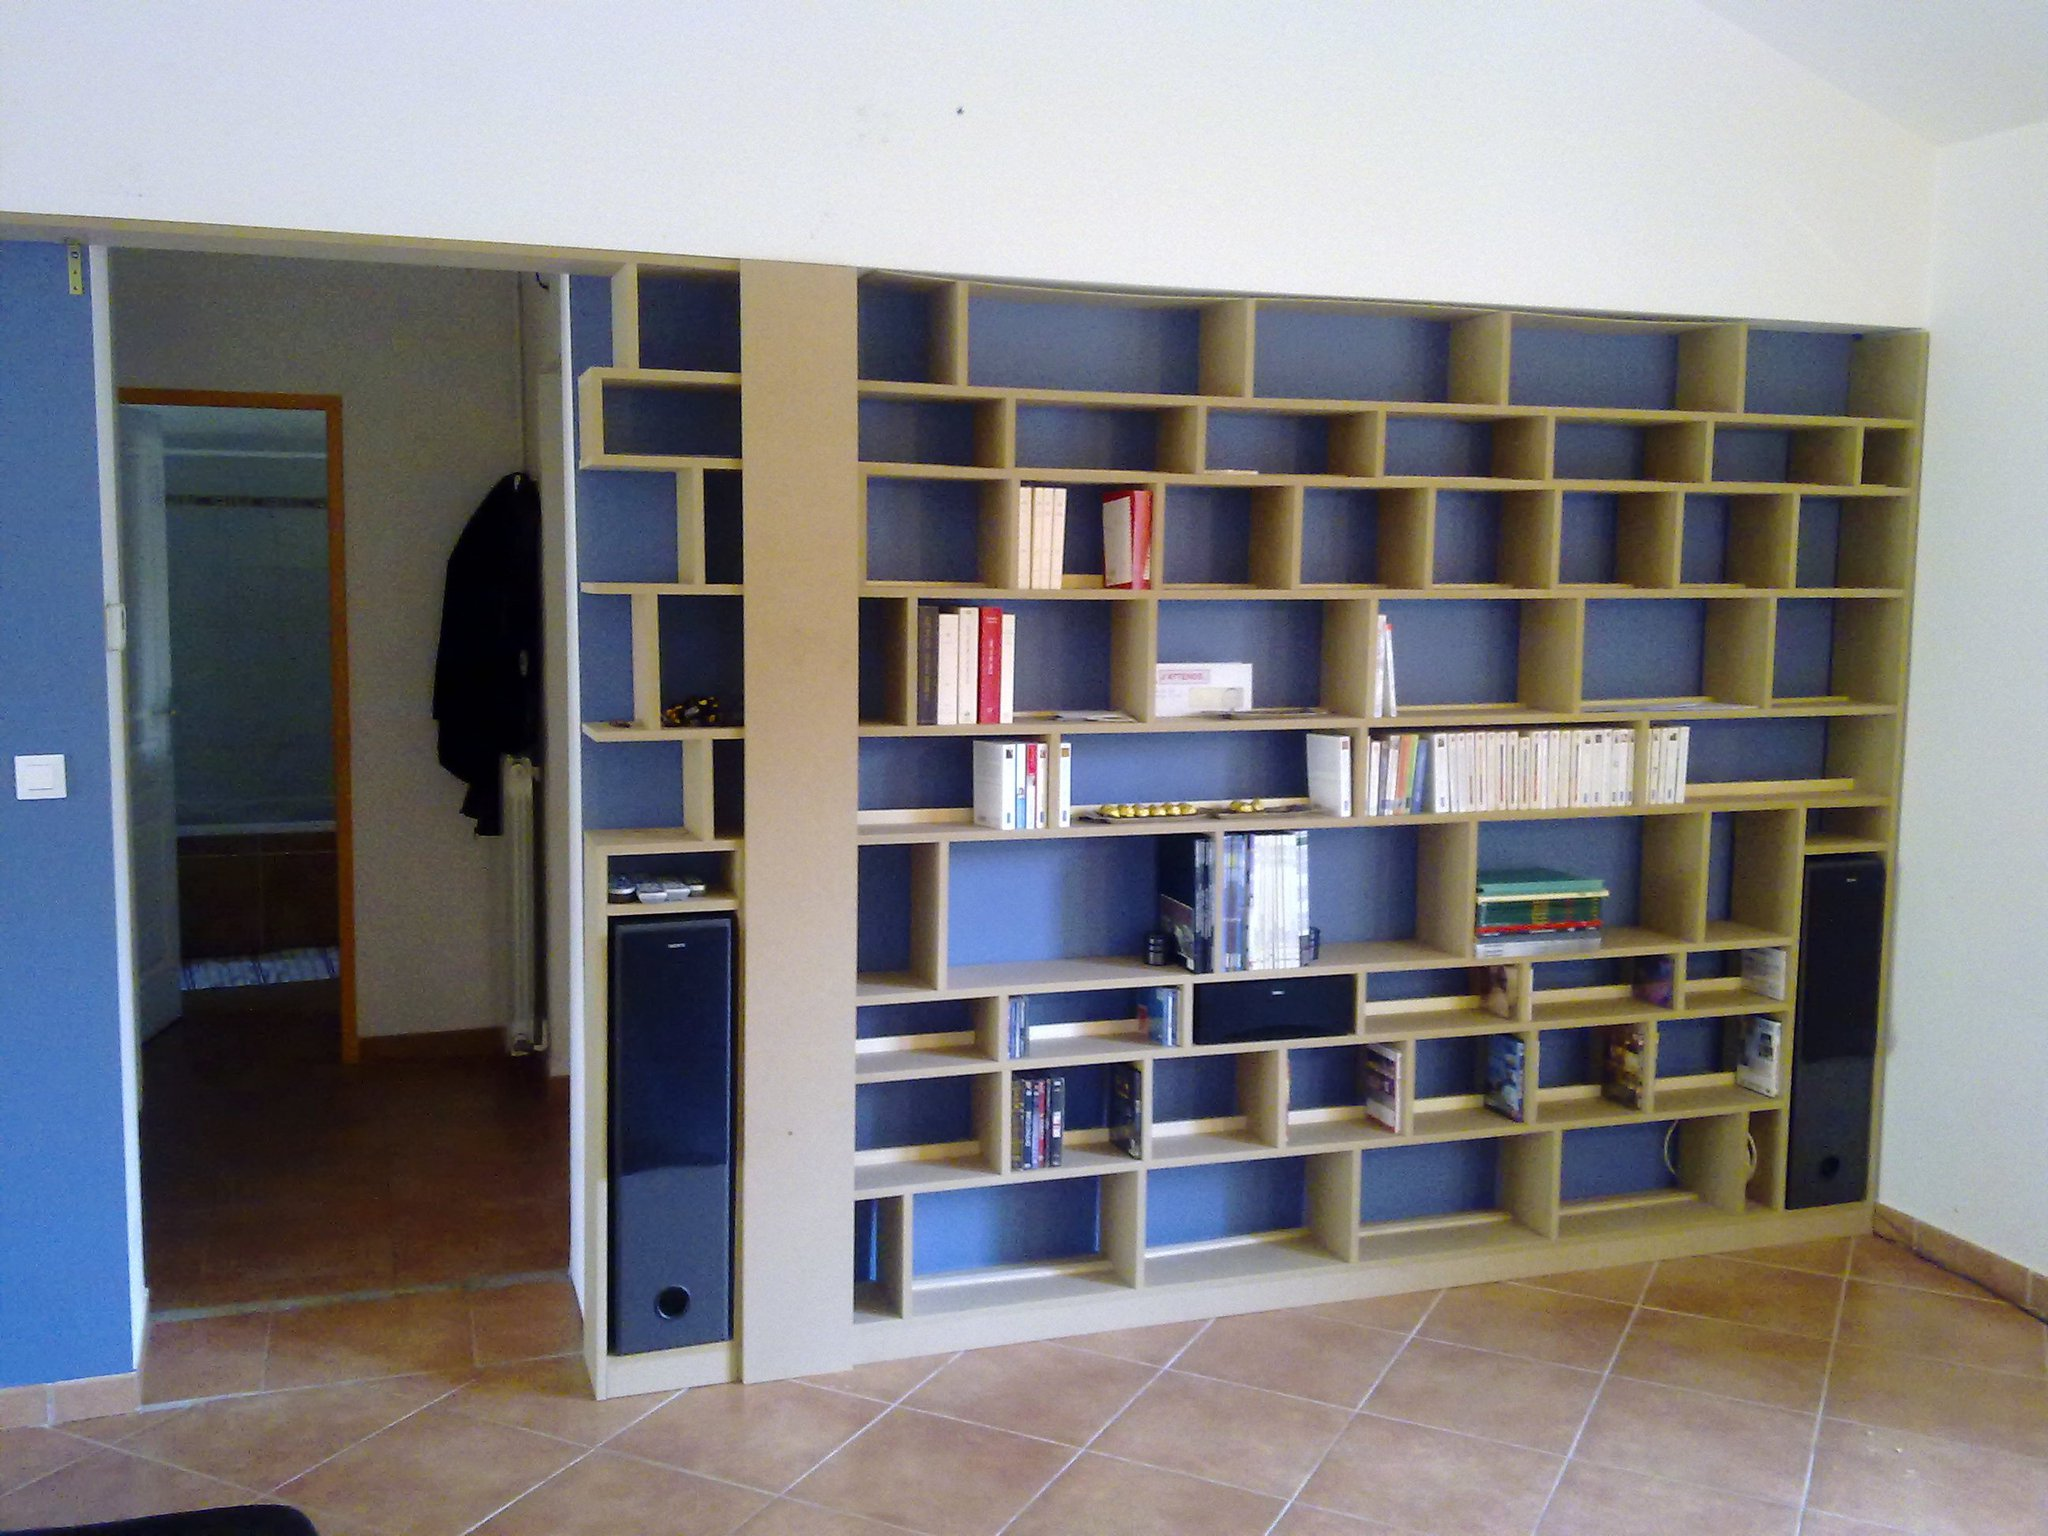 construire sa biblioth que sur mesure notre maison rt2012 par trecobat. Black Bedroom Furniture Sets. Home Design Ideas